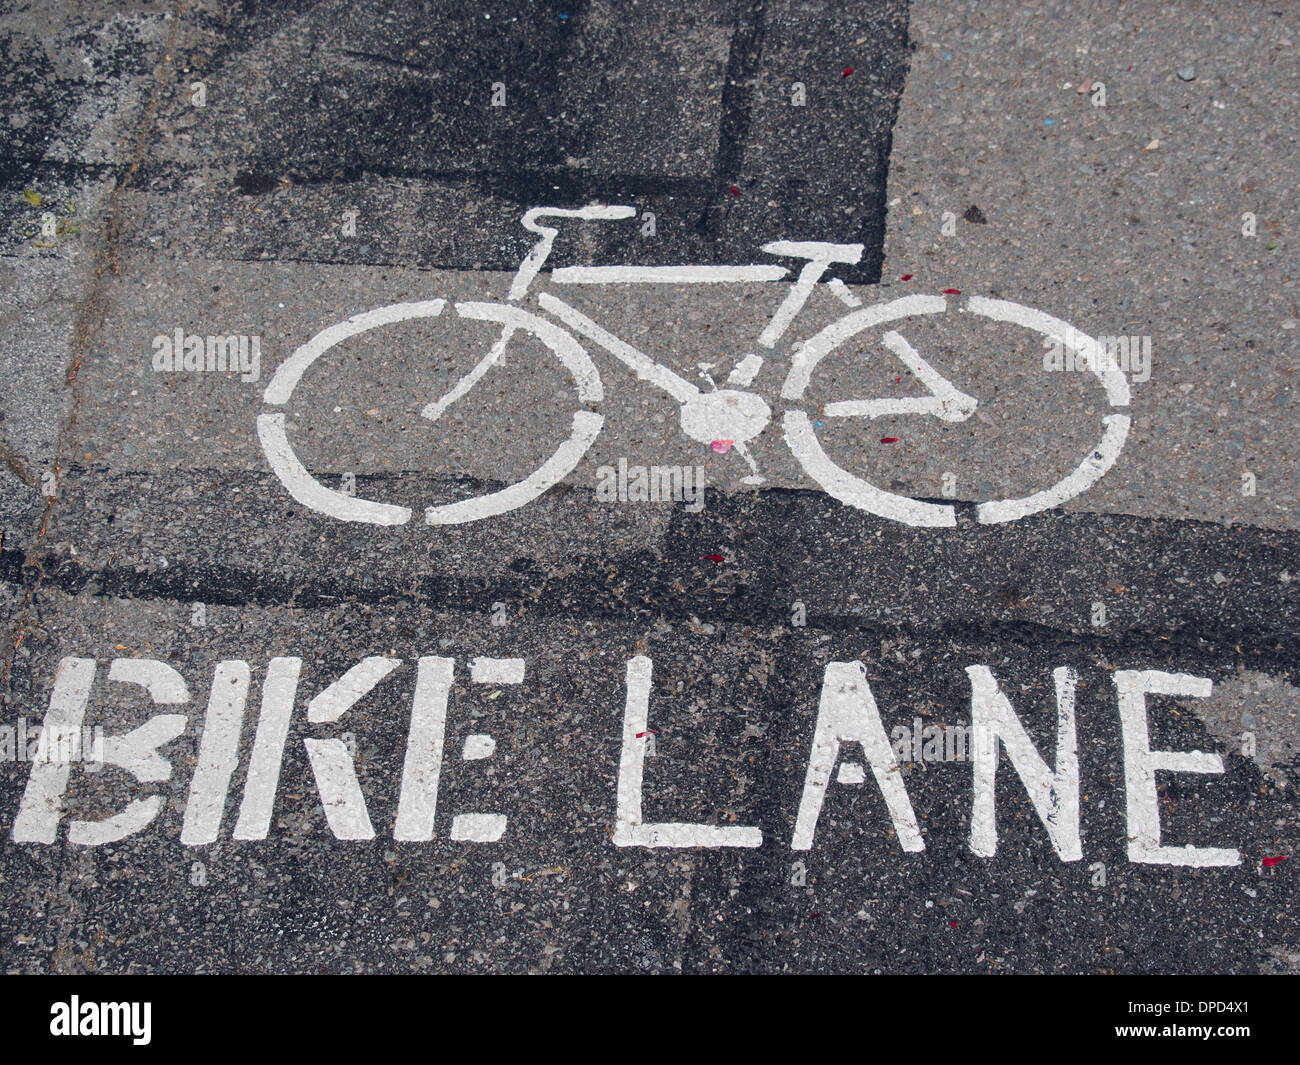 Bike Lane sign - Stock Image